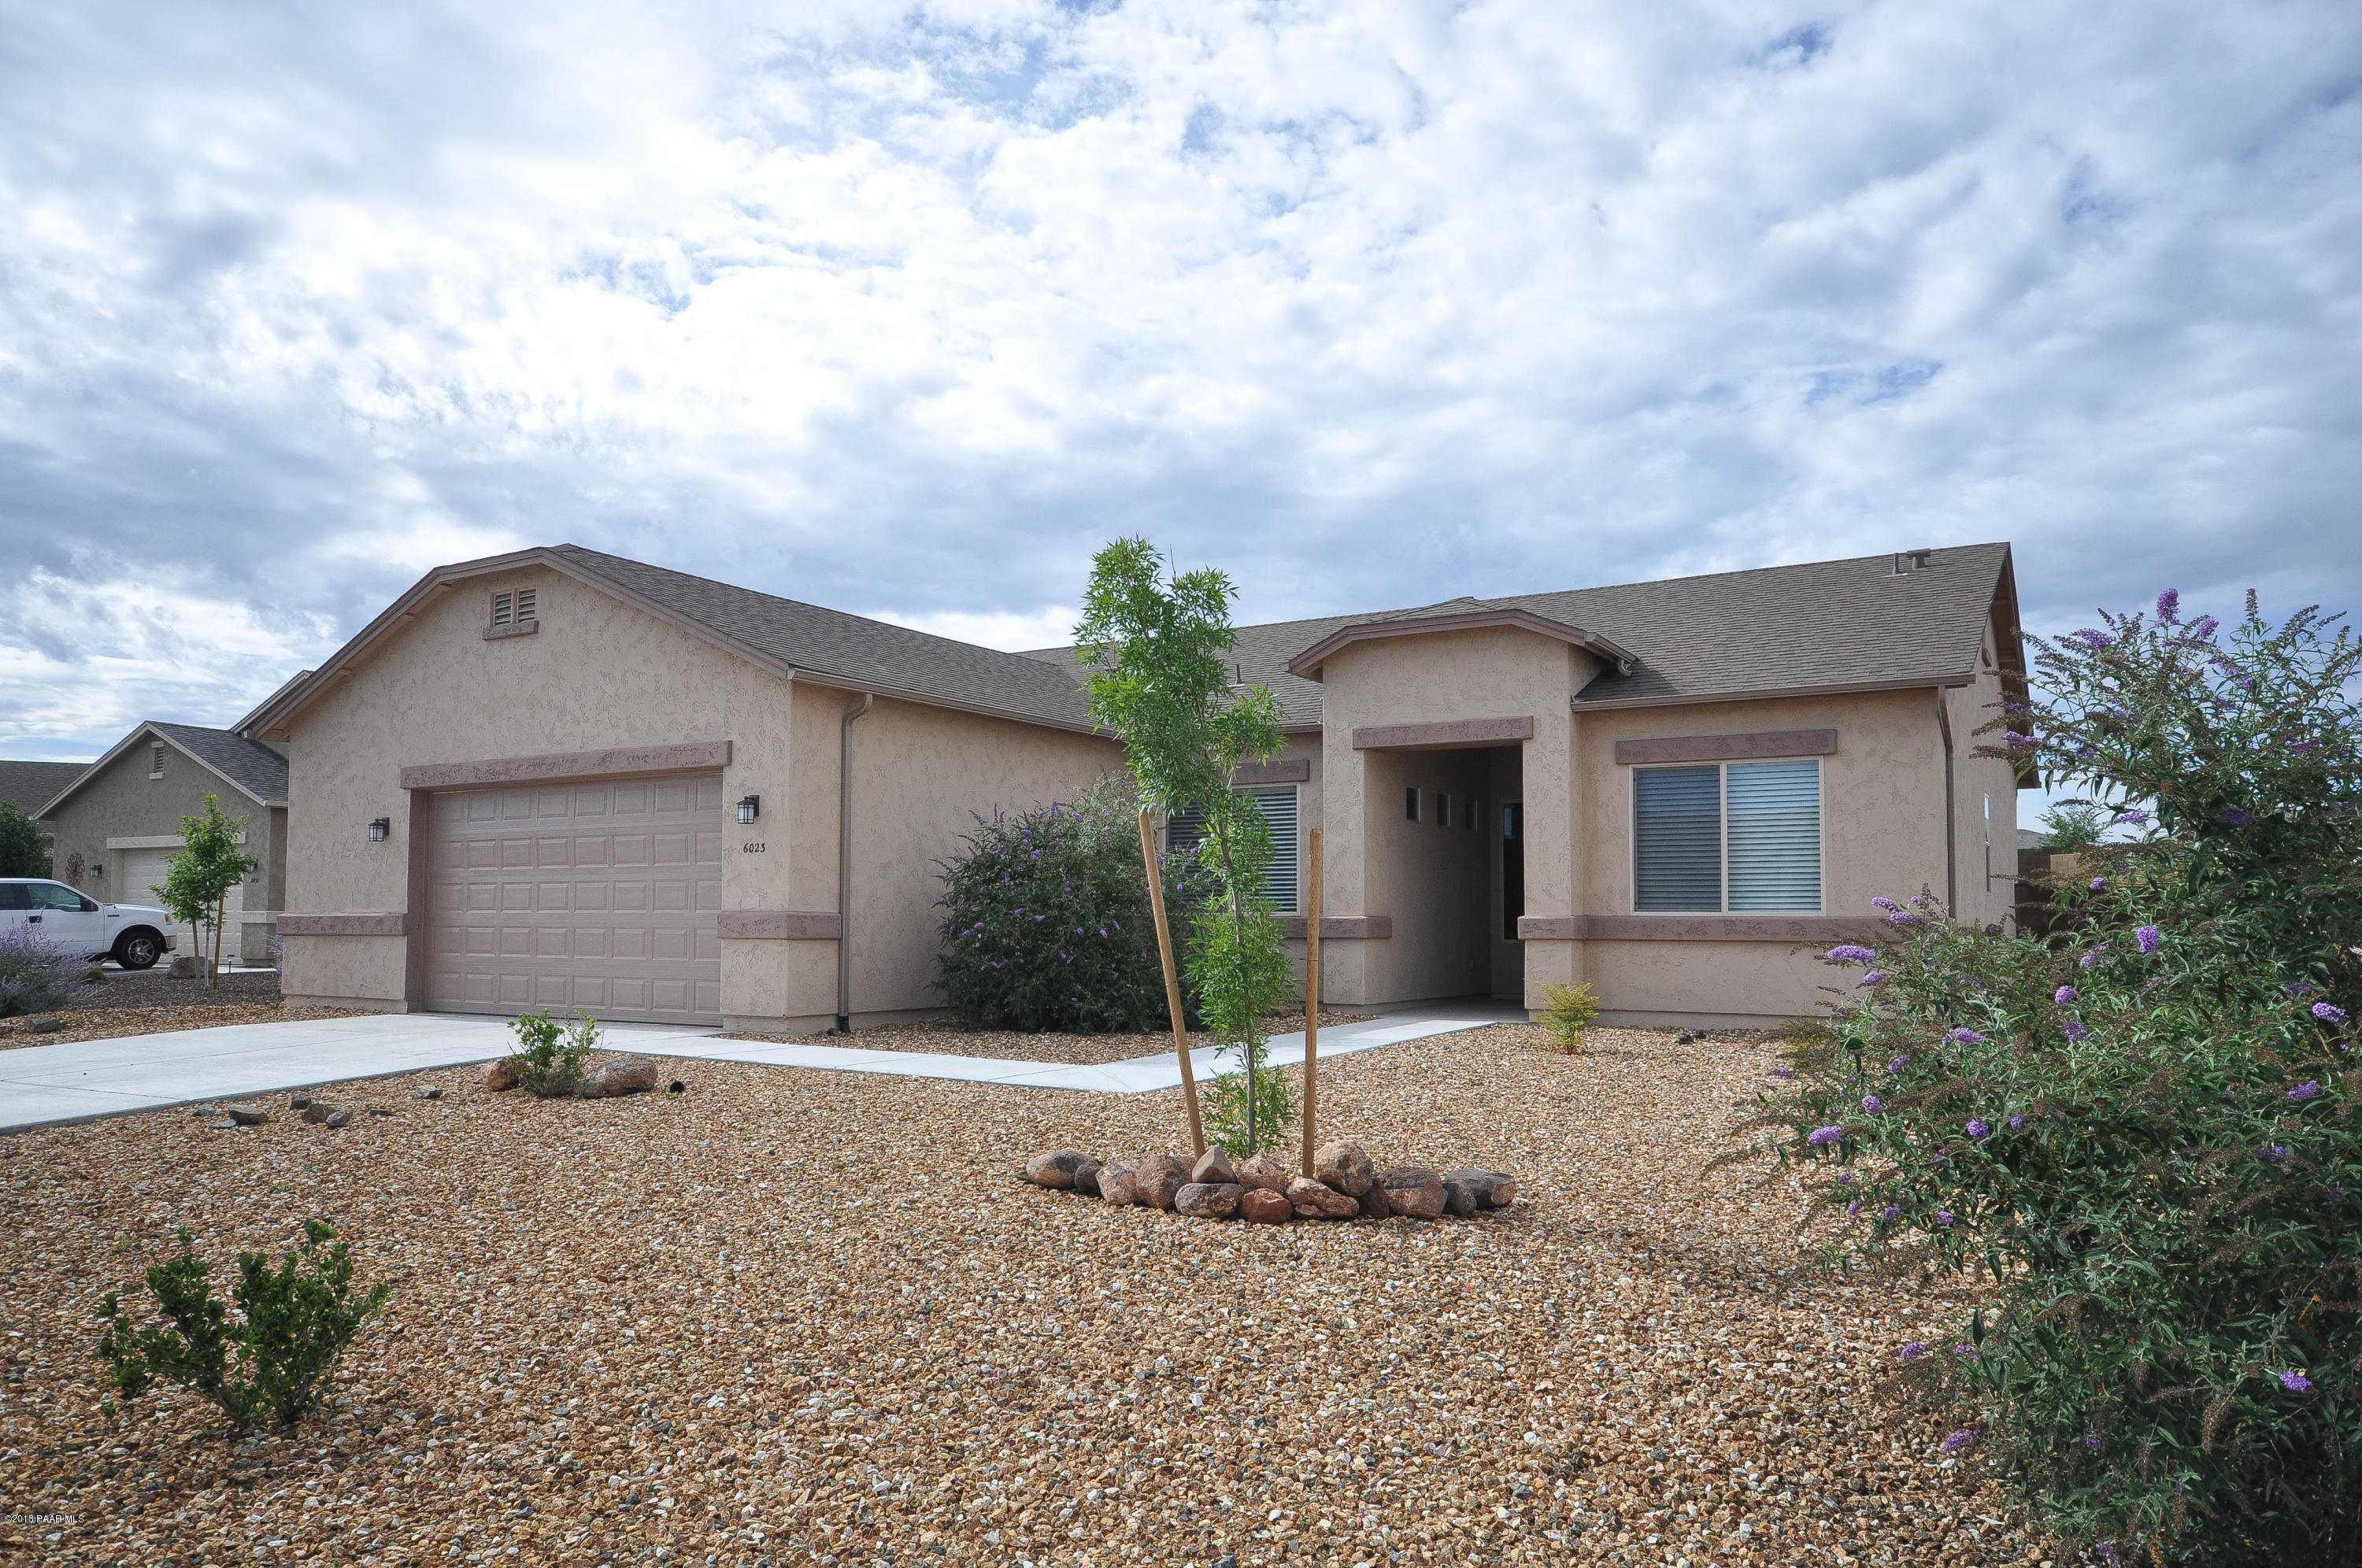 Photo of 6023 Tanridge, Prescott Valley, AZ 86314